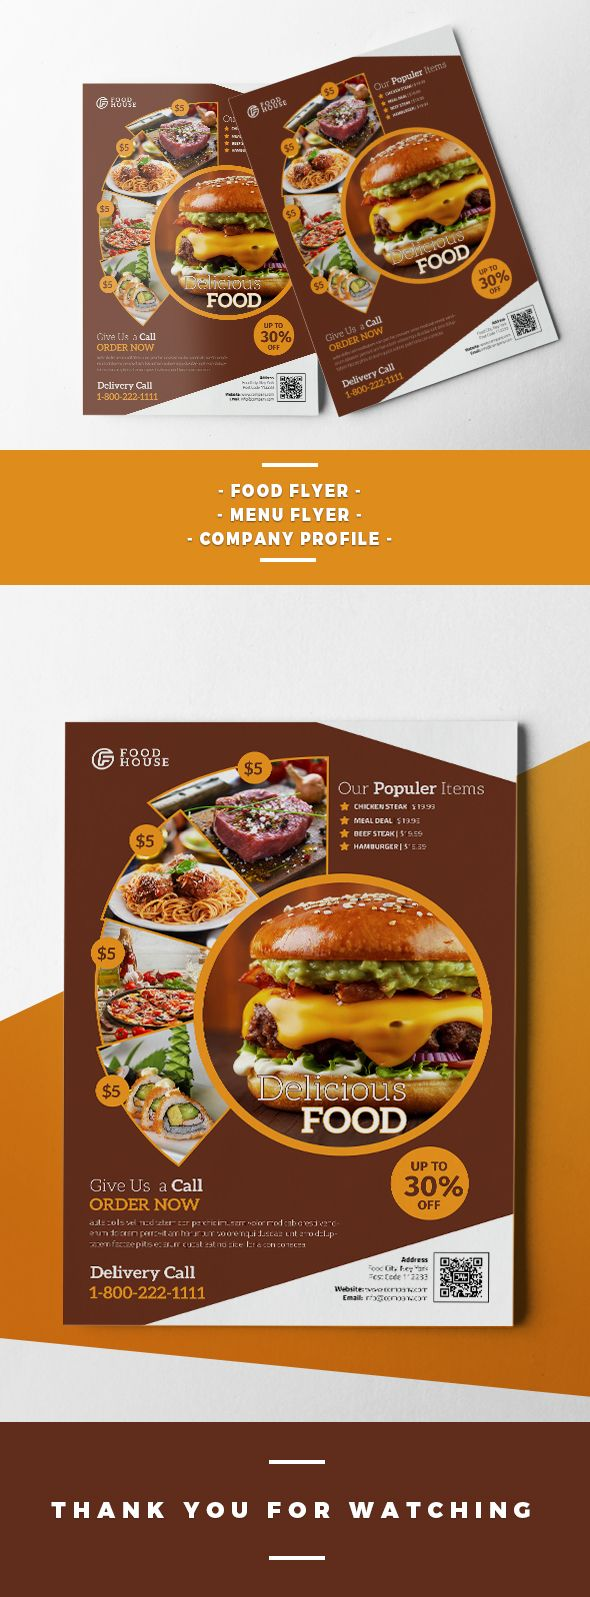 ad, barbecue, bbq, burger, chocolate, coffee, colorful, creative, fast food, flyer, food, foods, fresh, green, grill, modern, orange, print templates, promotion, promotional, restaurant, salad, sandwich, simple, steak, template, vegetable